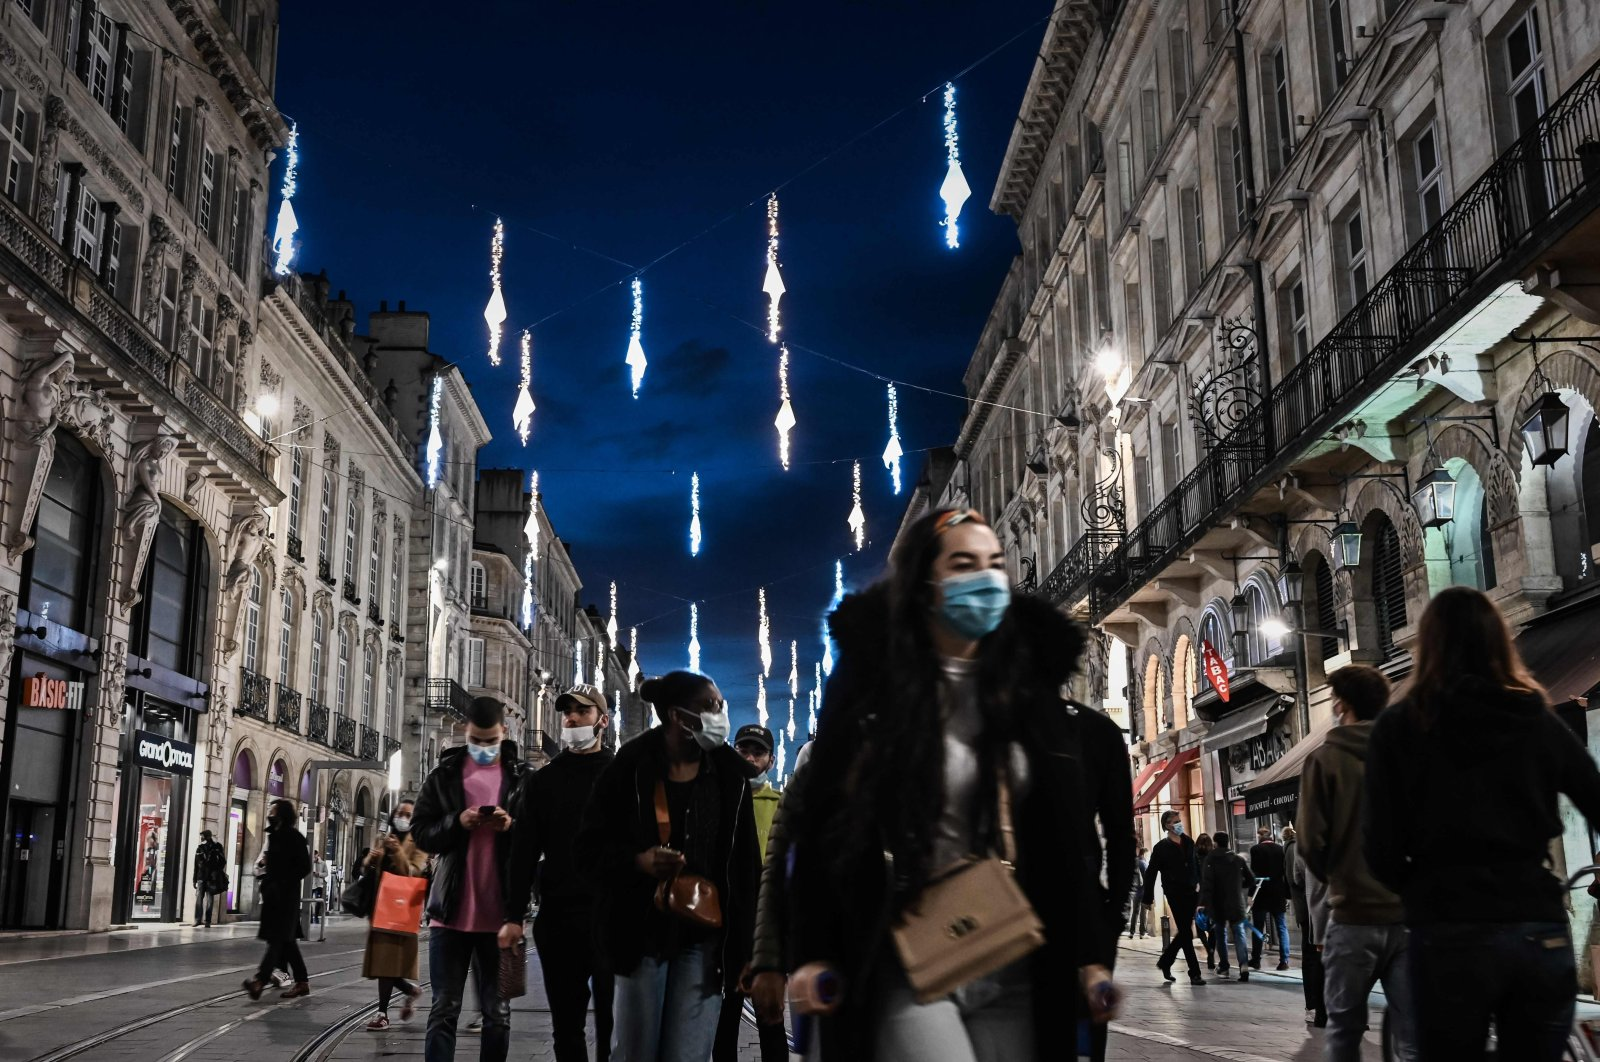 Pedestrians walk under Christmas decorations in a shopping street in Bordeaux, southwestern France, Nov. 28, 2020. (AFP Photo)